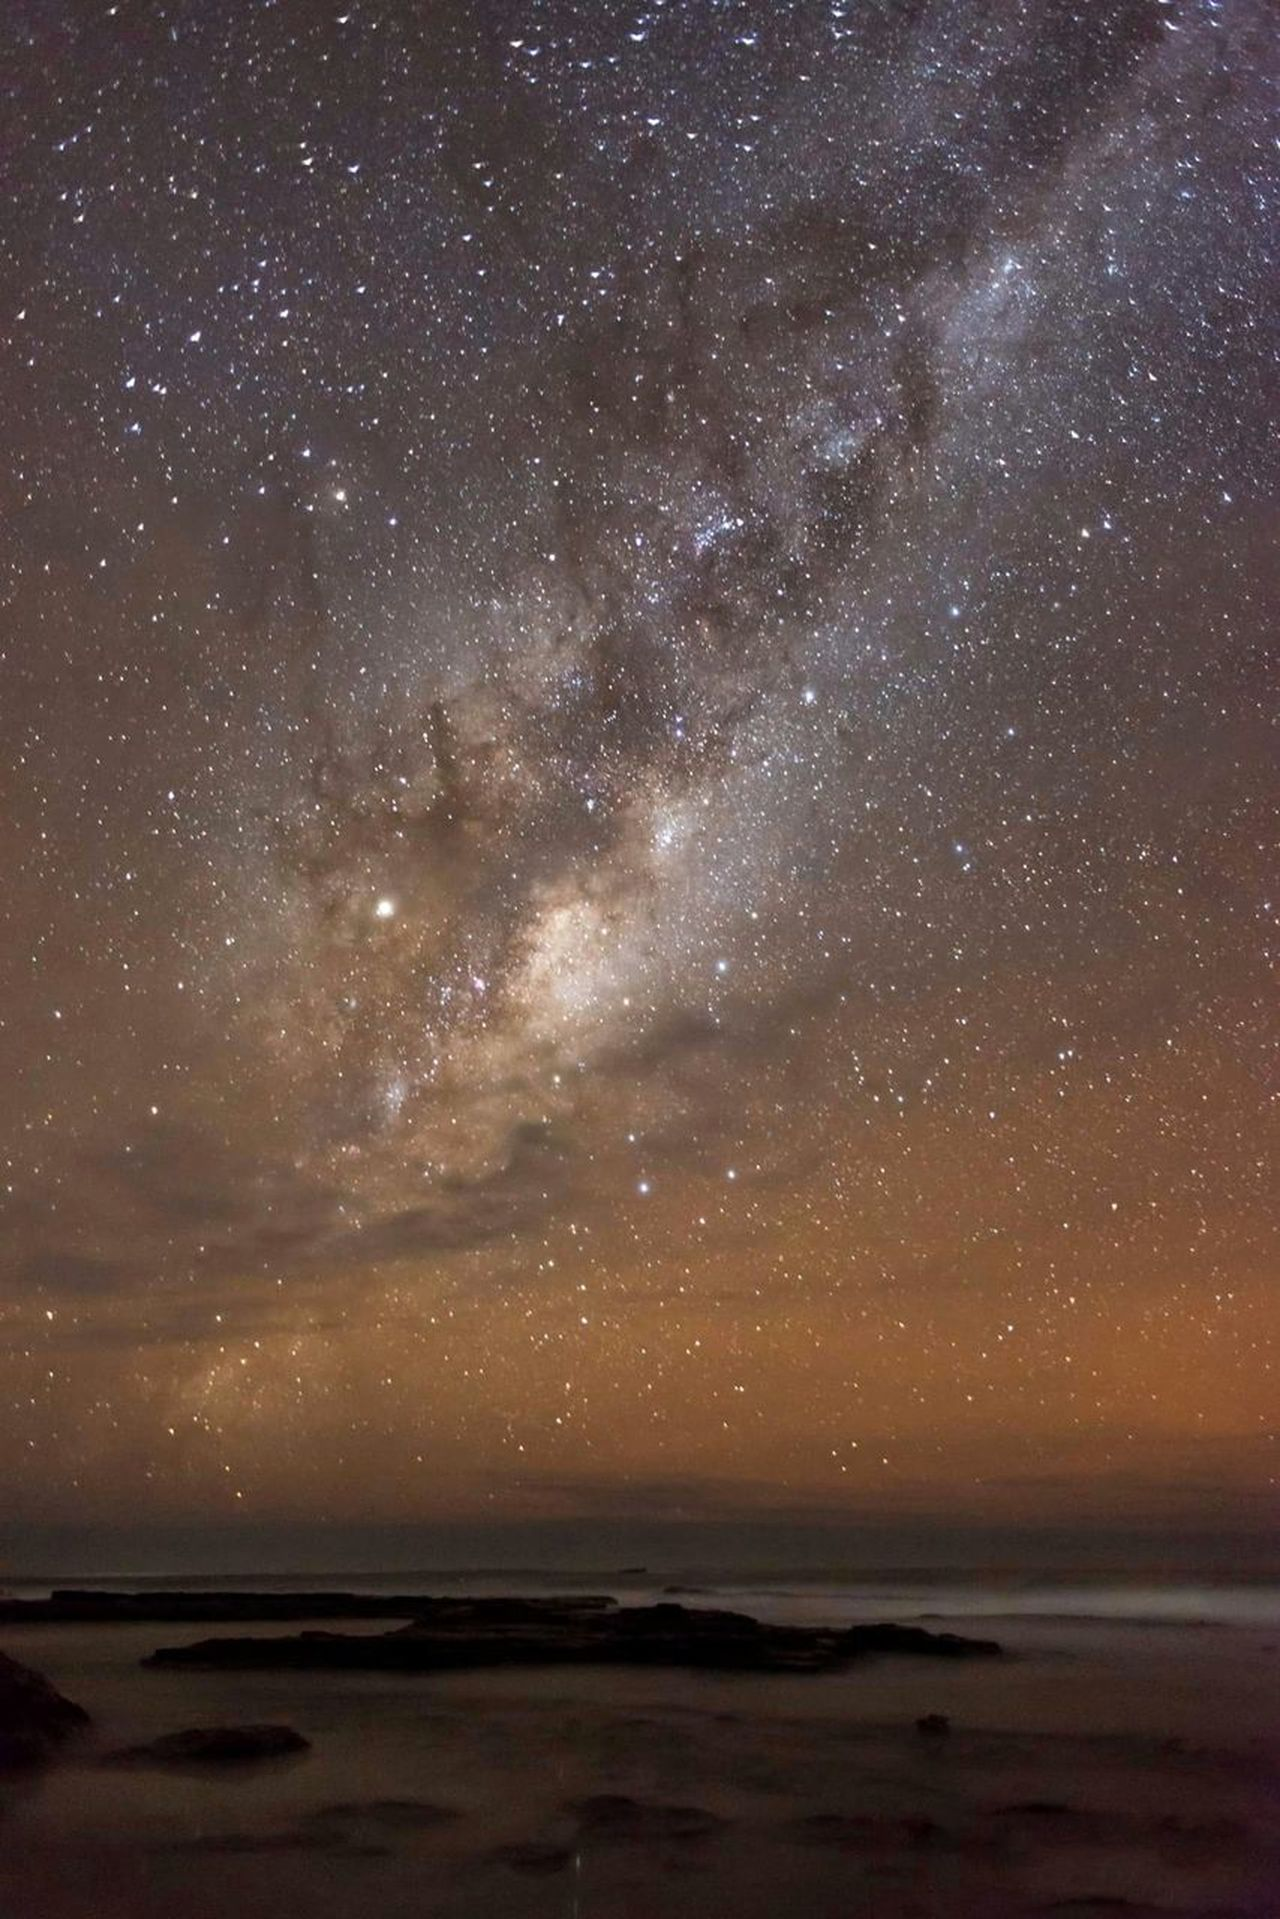 Night Beach Star - Space Astronomy Milky Way Sky Sea Galaxy Nature Space Constellation Landscape Water Outdoors Summer Awe Scenics Beauty Sand Sunset Broski Photography Canary!Graphics Canary! Eyesight Horizon Over Water